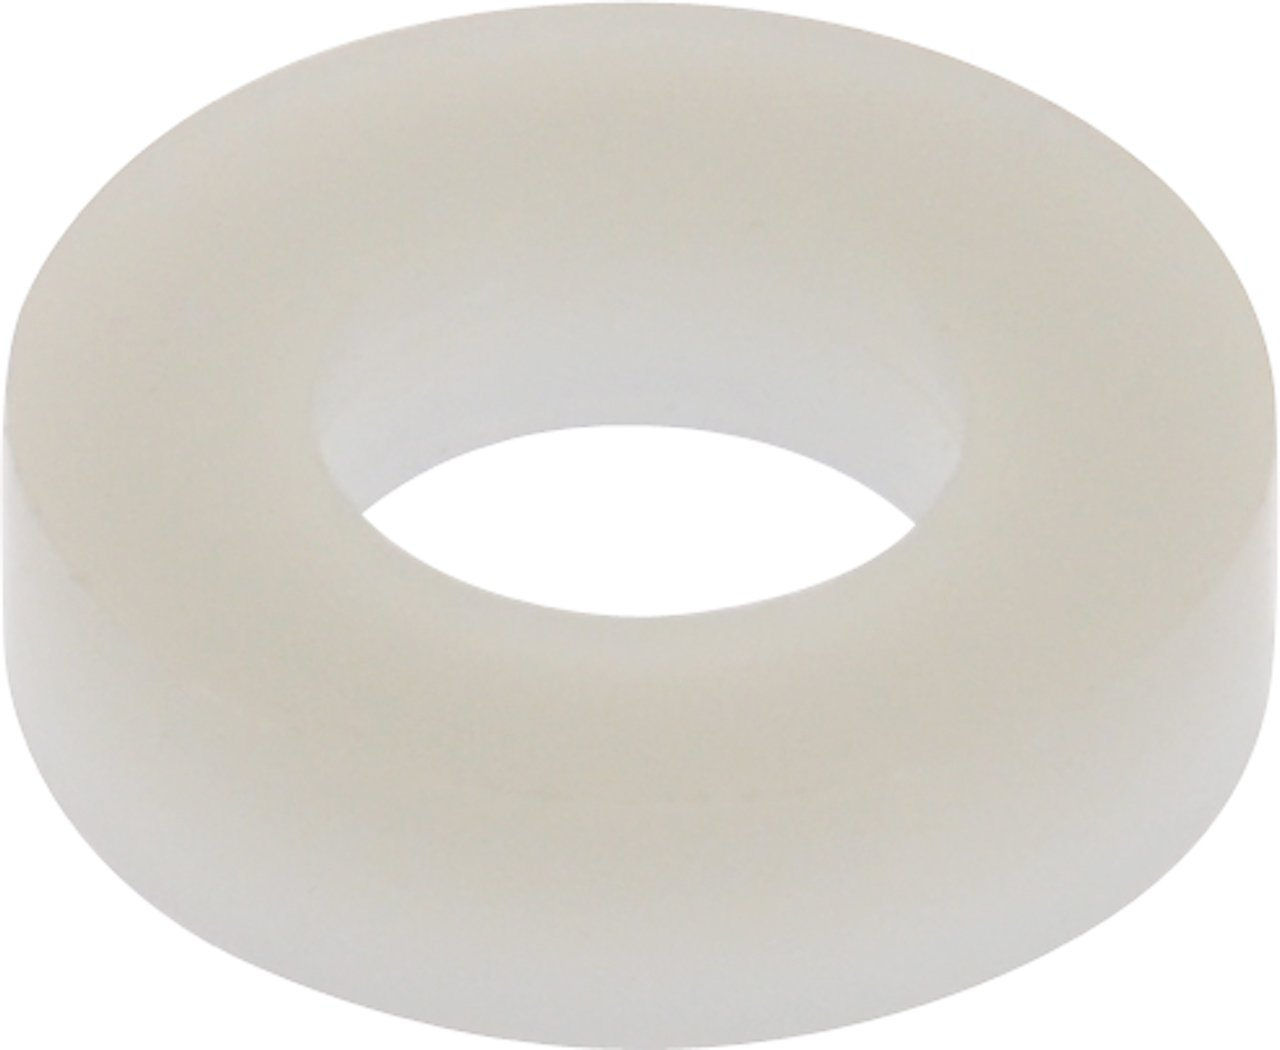 The Hillman Group 59551 0.500 x 0.257 x 0.125-Inch Nylon Fender Washers, 40-Pack